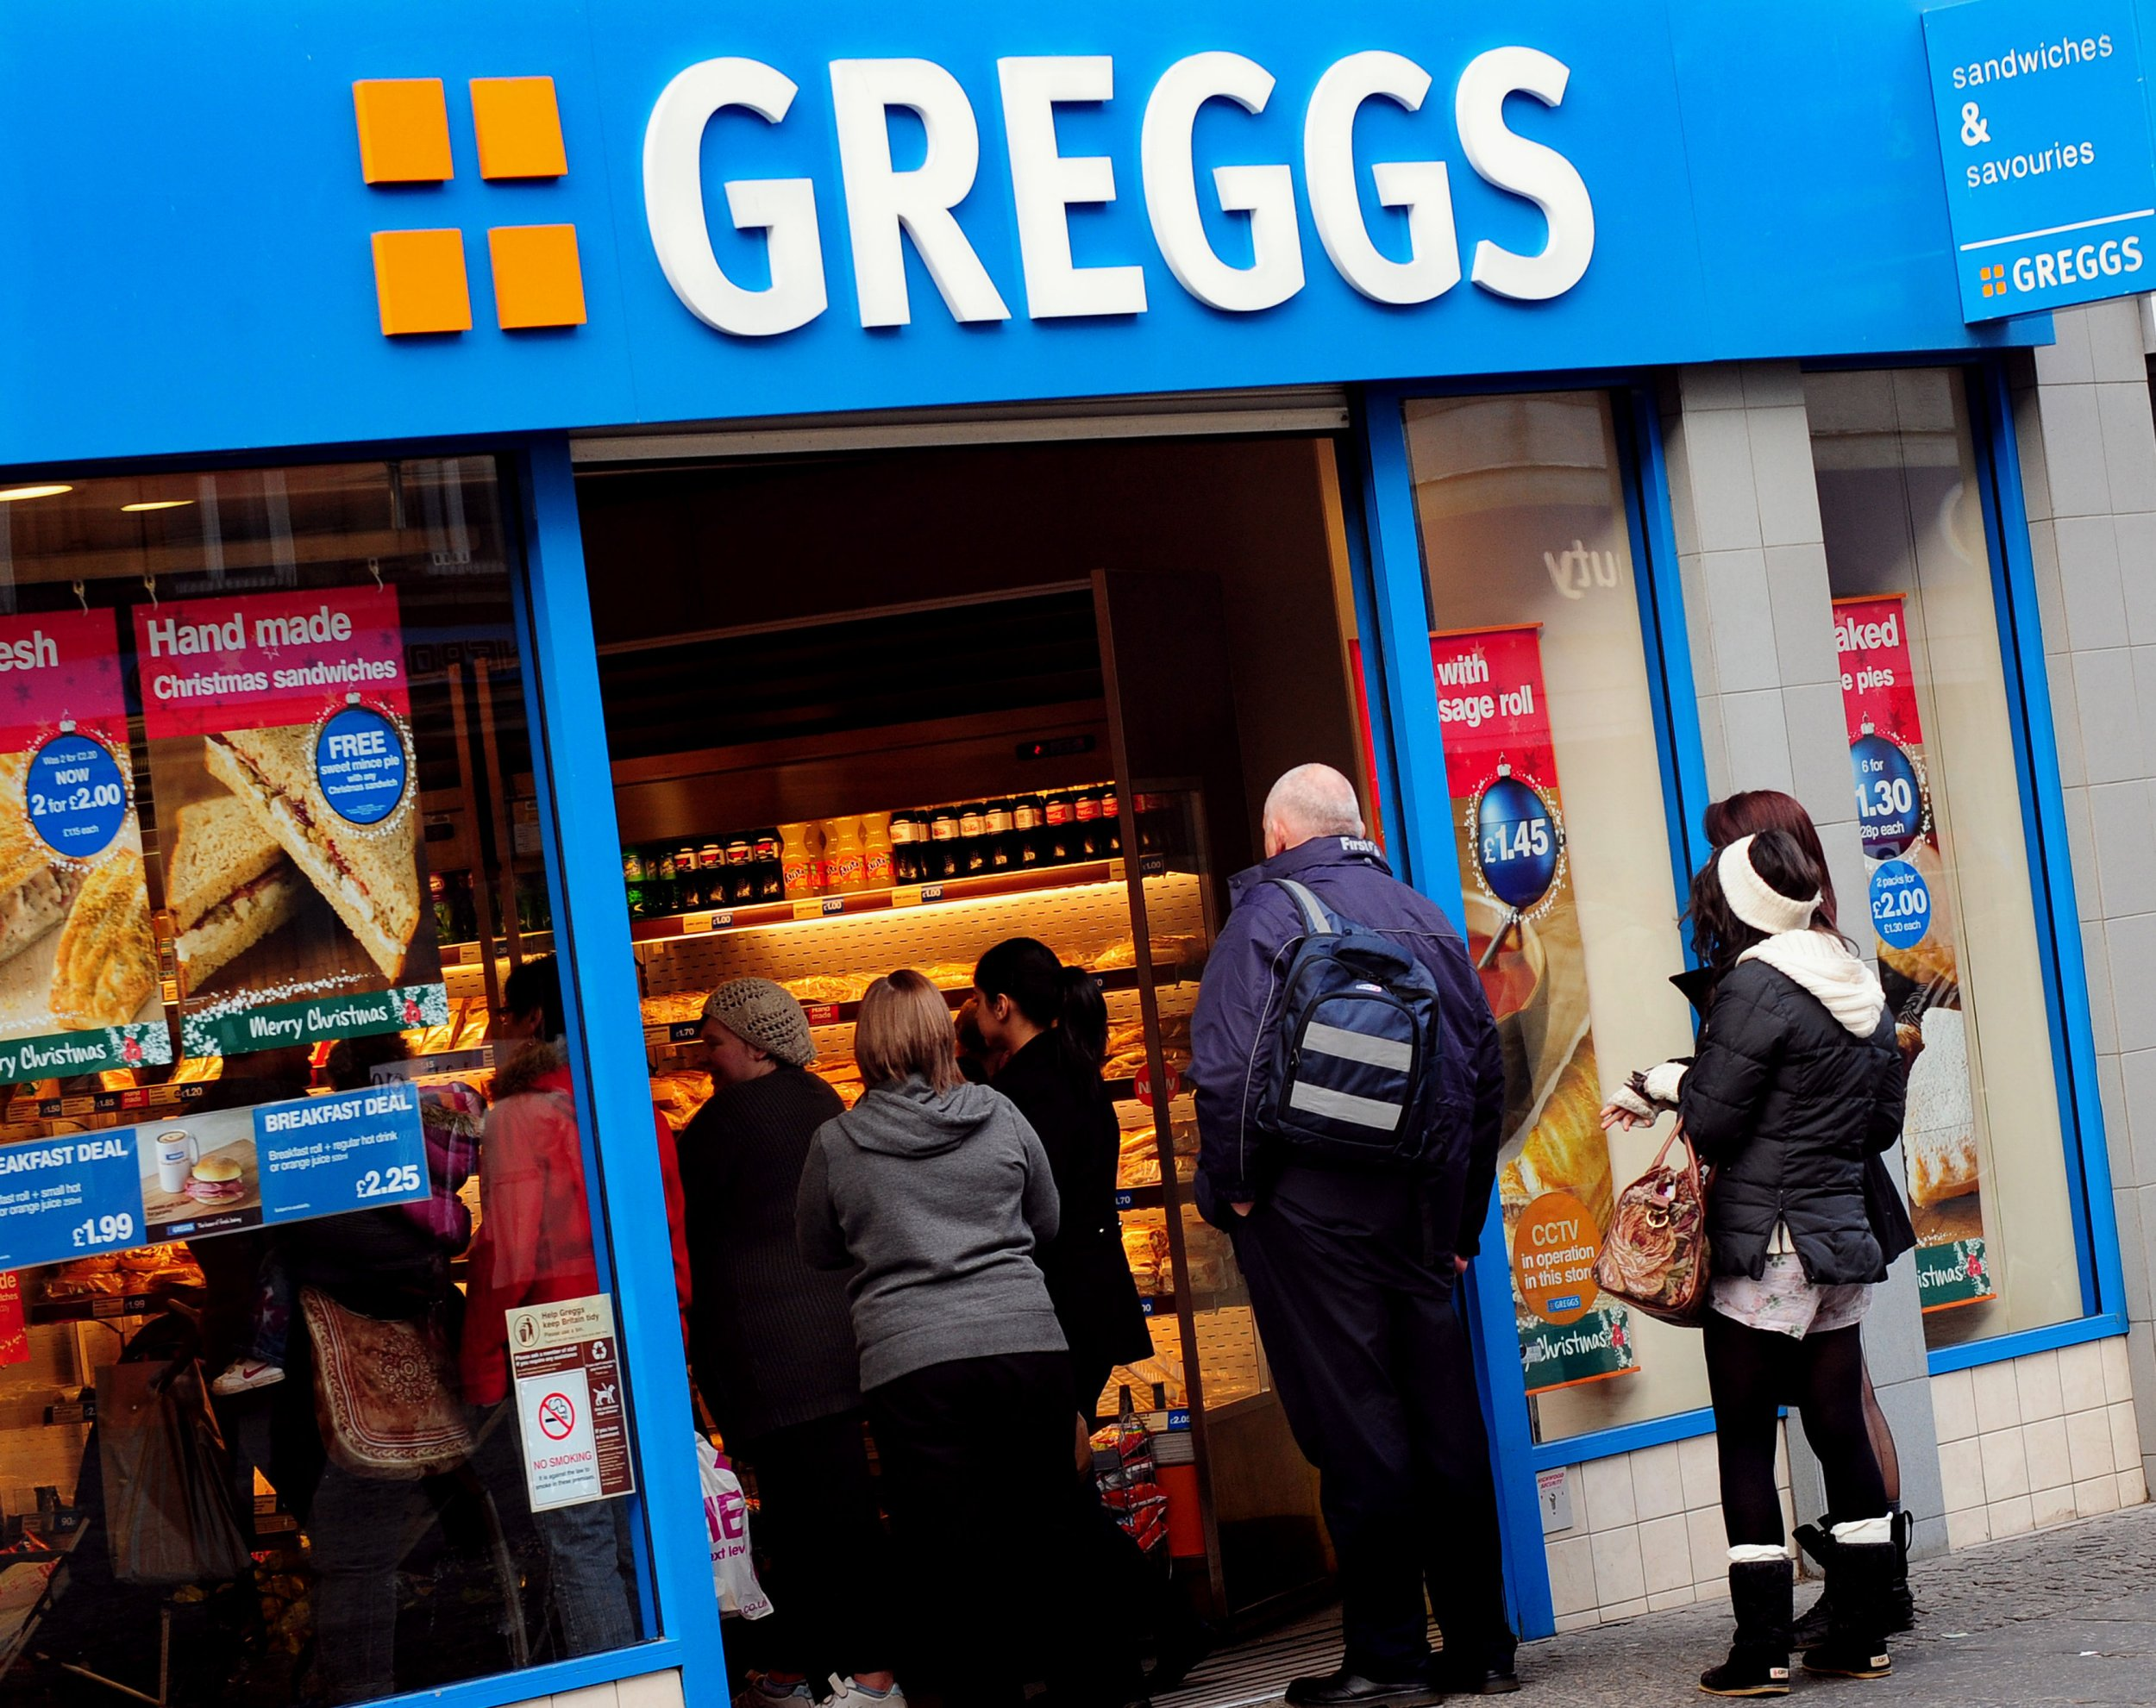 File photo dated 24/11/10 of a Greggs shop, as the high street chain is planning to ramp up its healthy eating options as demand surges for its salads and yoghurts. PRESS ASSOCIATION Photo. Issue date: Sunday June 12, 2016. Chief executive Roger Whiteside told the Press Association that Britain's biggest baker is considering branching out even further from its traditional staples of sausage rolls and doughnuts into Mexican food, and potentially even sushi. See PA story CITY Greggs. Photo credit should read: Rui Vieira/PA Wire